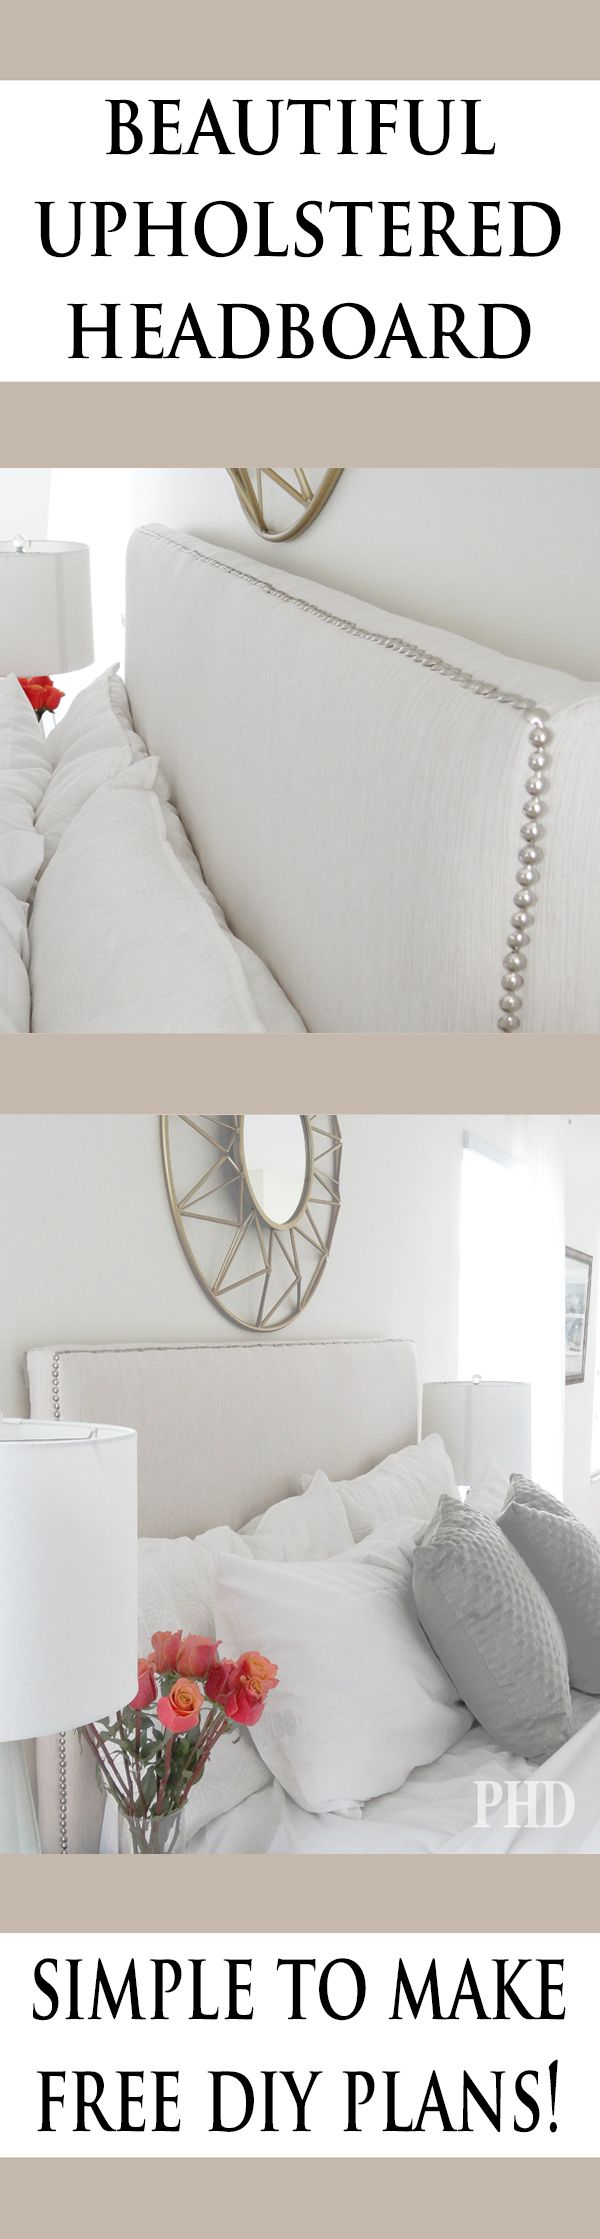 Making An Upholstered Headboard With Nailhead Trim Diy Headboard Upholstered With Nailhead Trim Provident Home